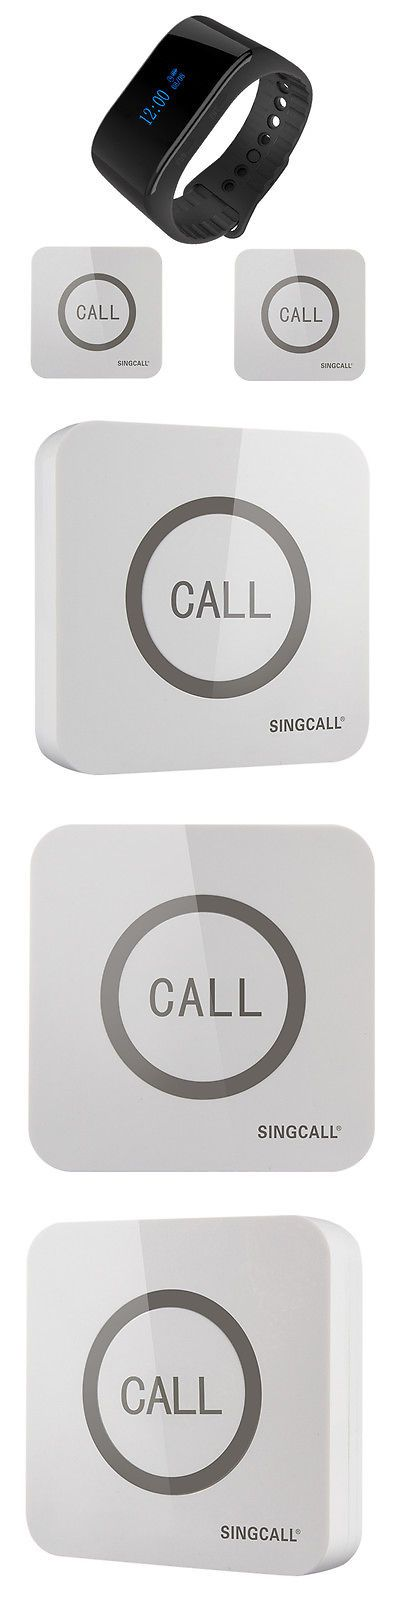 Pagers: Singcall Wireless Service Calling System 1 Waterproof Watch, 2 Touchable Bells BUY IT NOW ONLY: $99.99